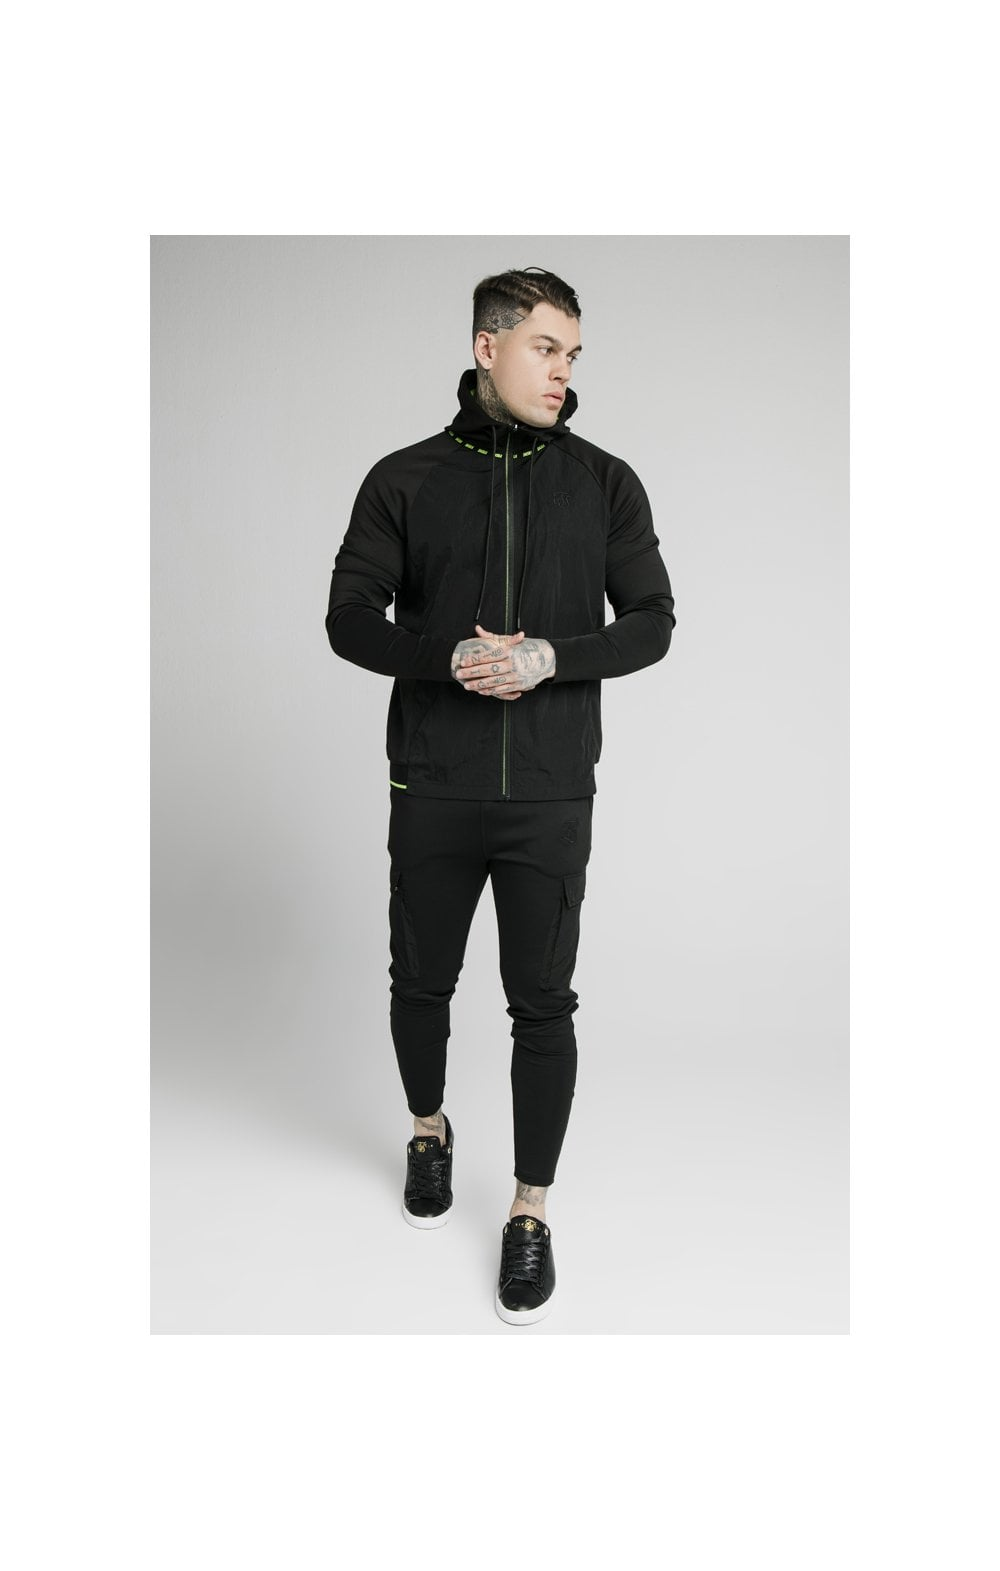 Load image into Gallery viewer, SikSilk Adapt Crushed Nylon Zip Through – Black (5)